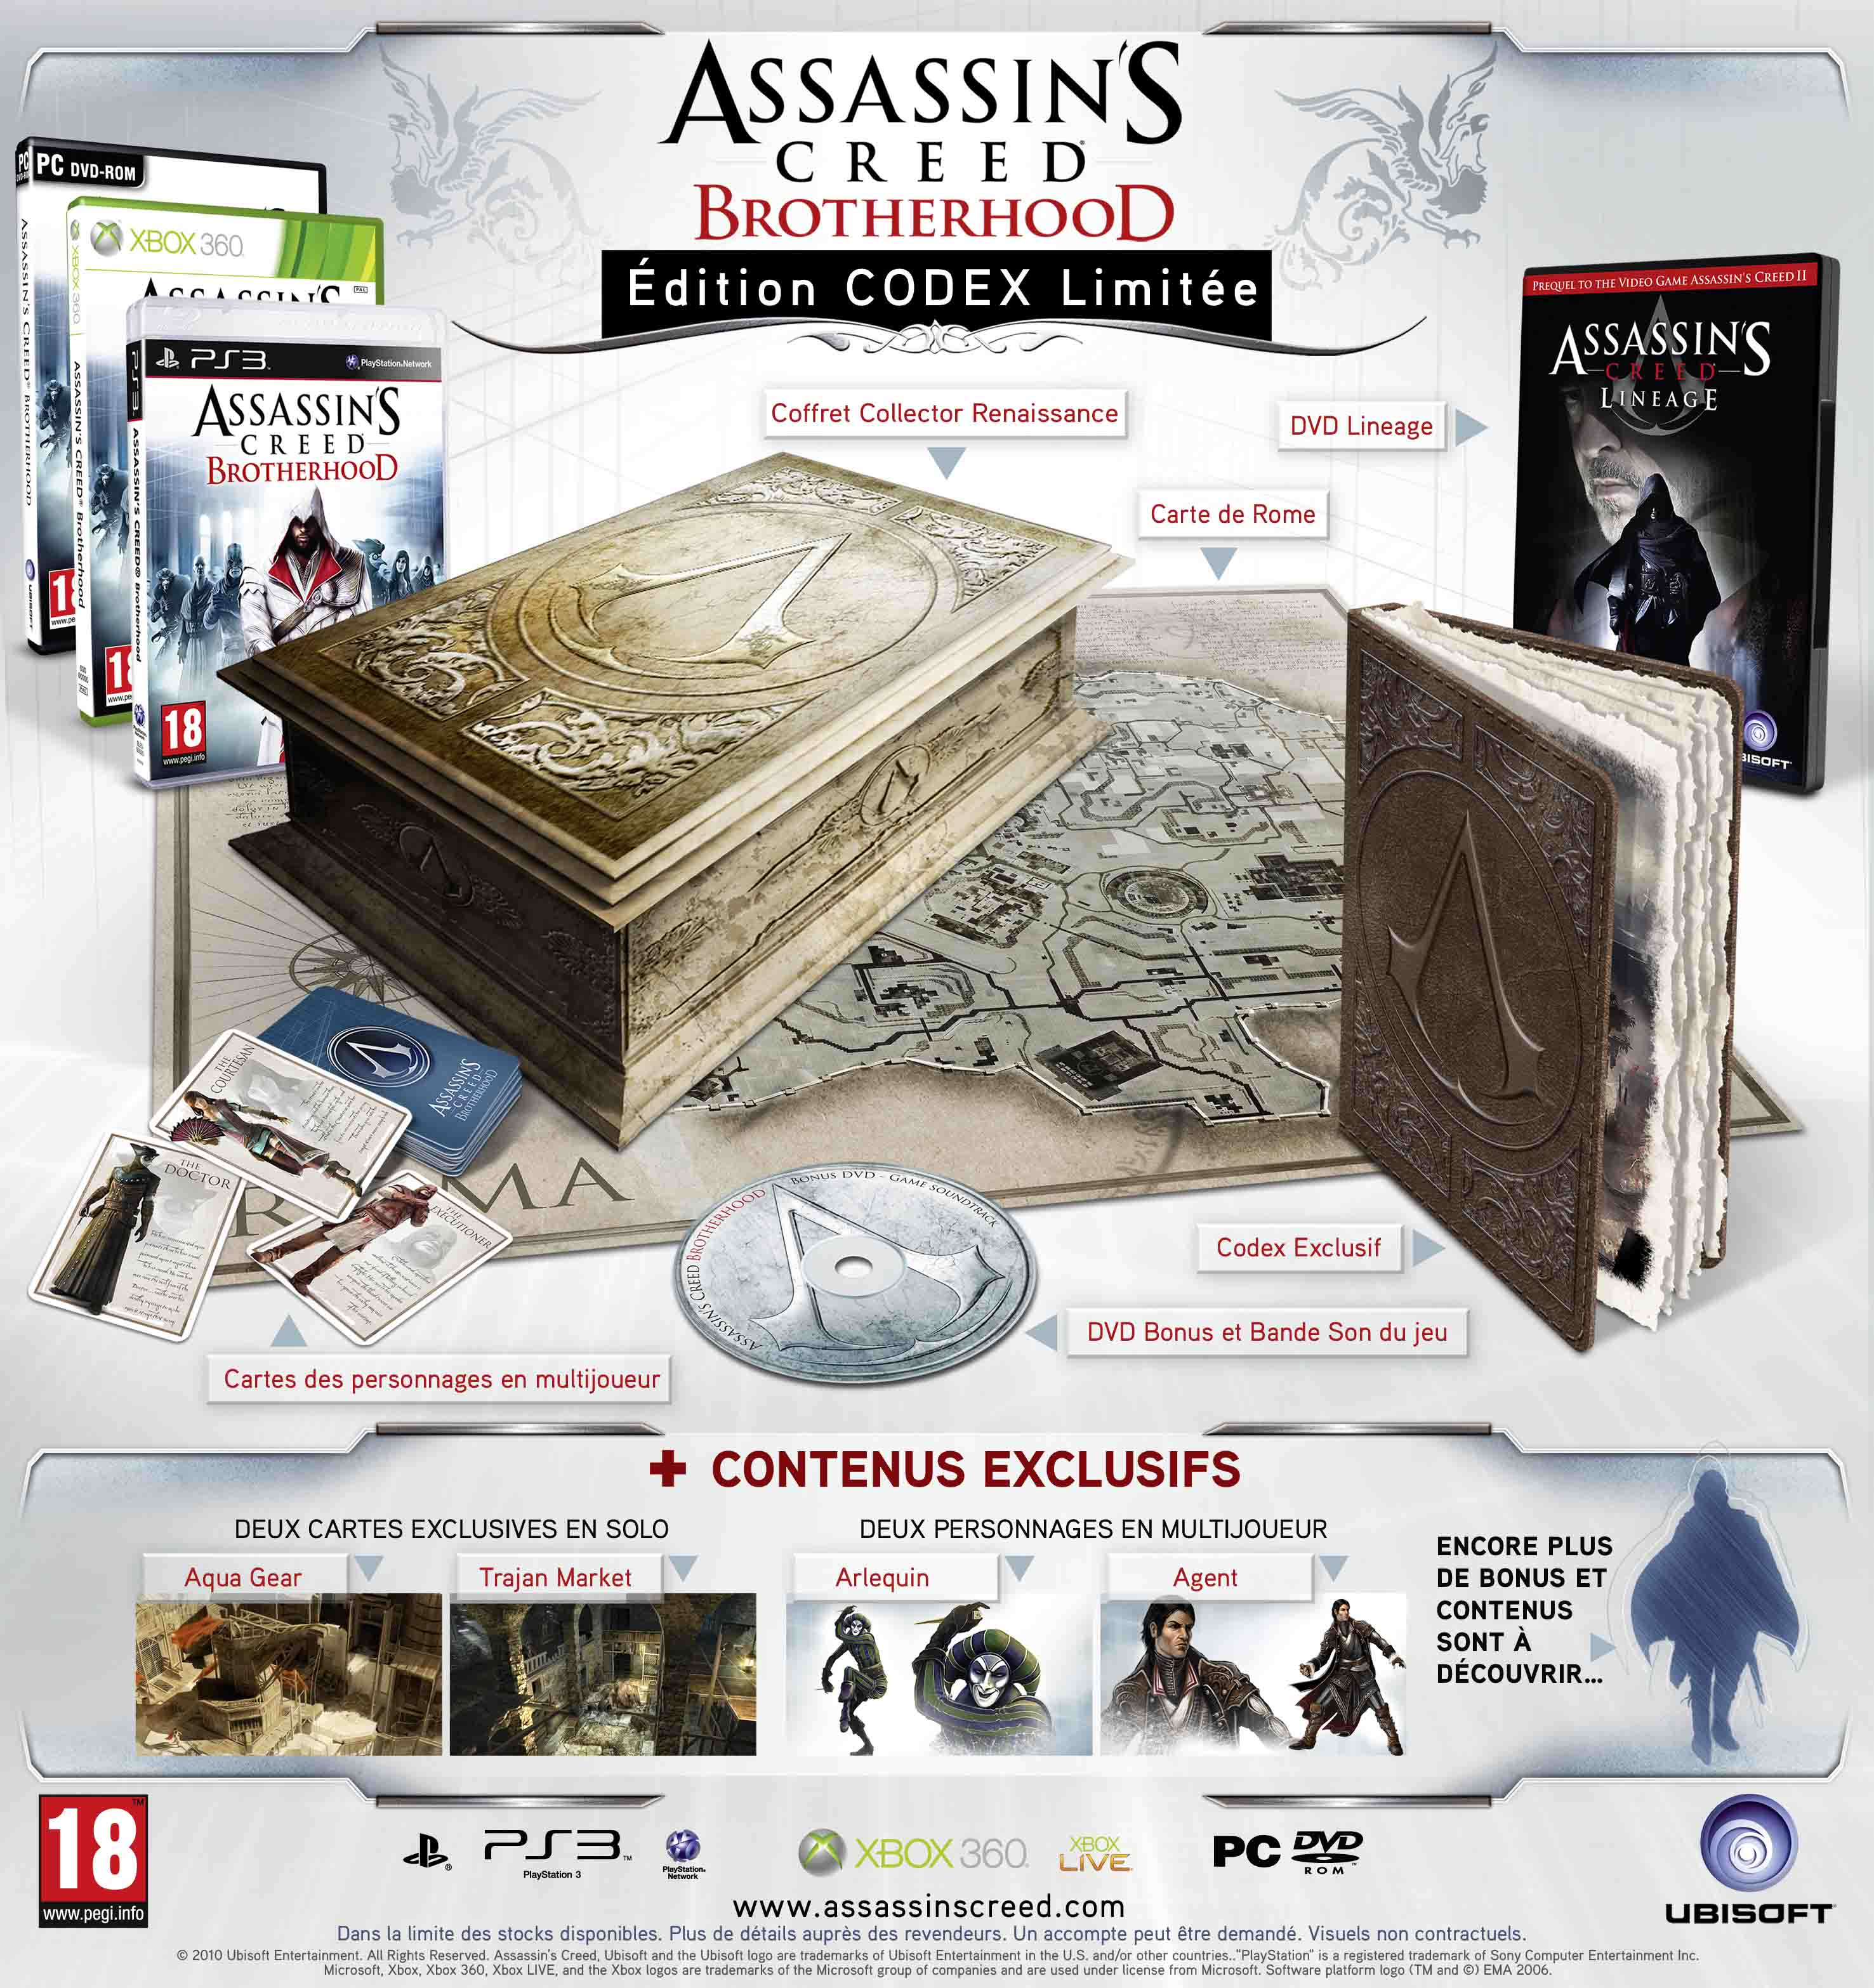 AssassinCreedBrotherhood-Collector Europe